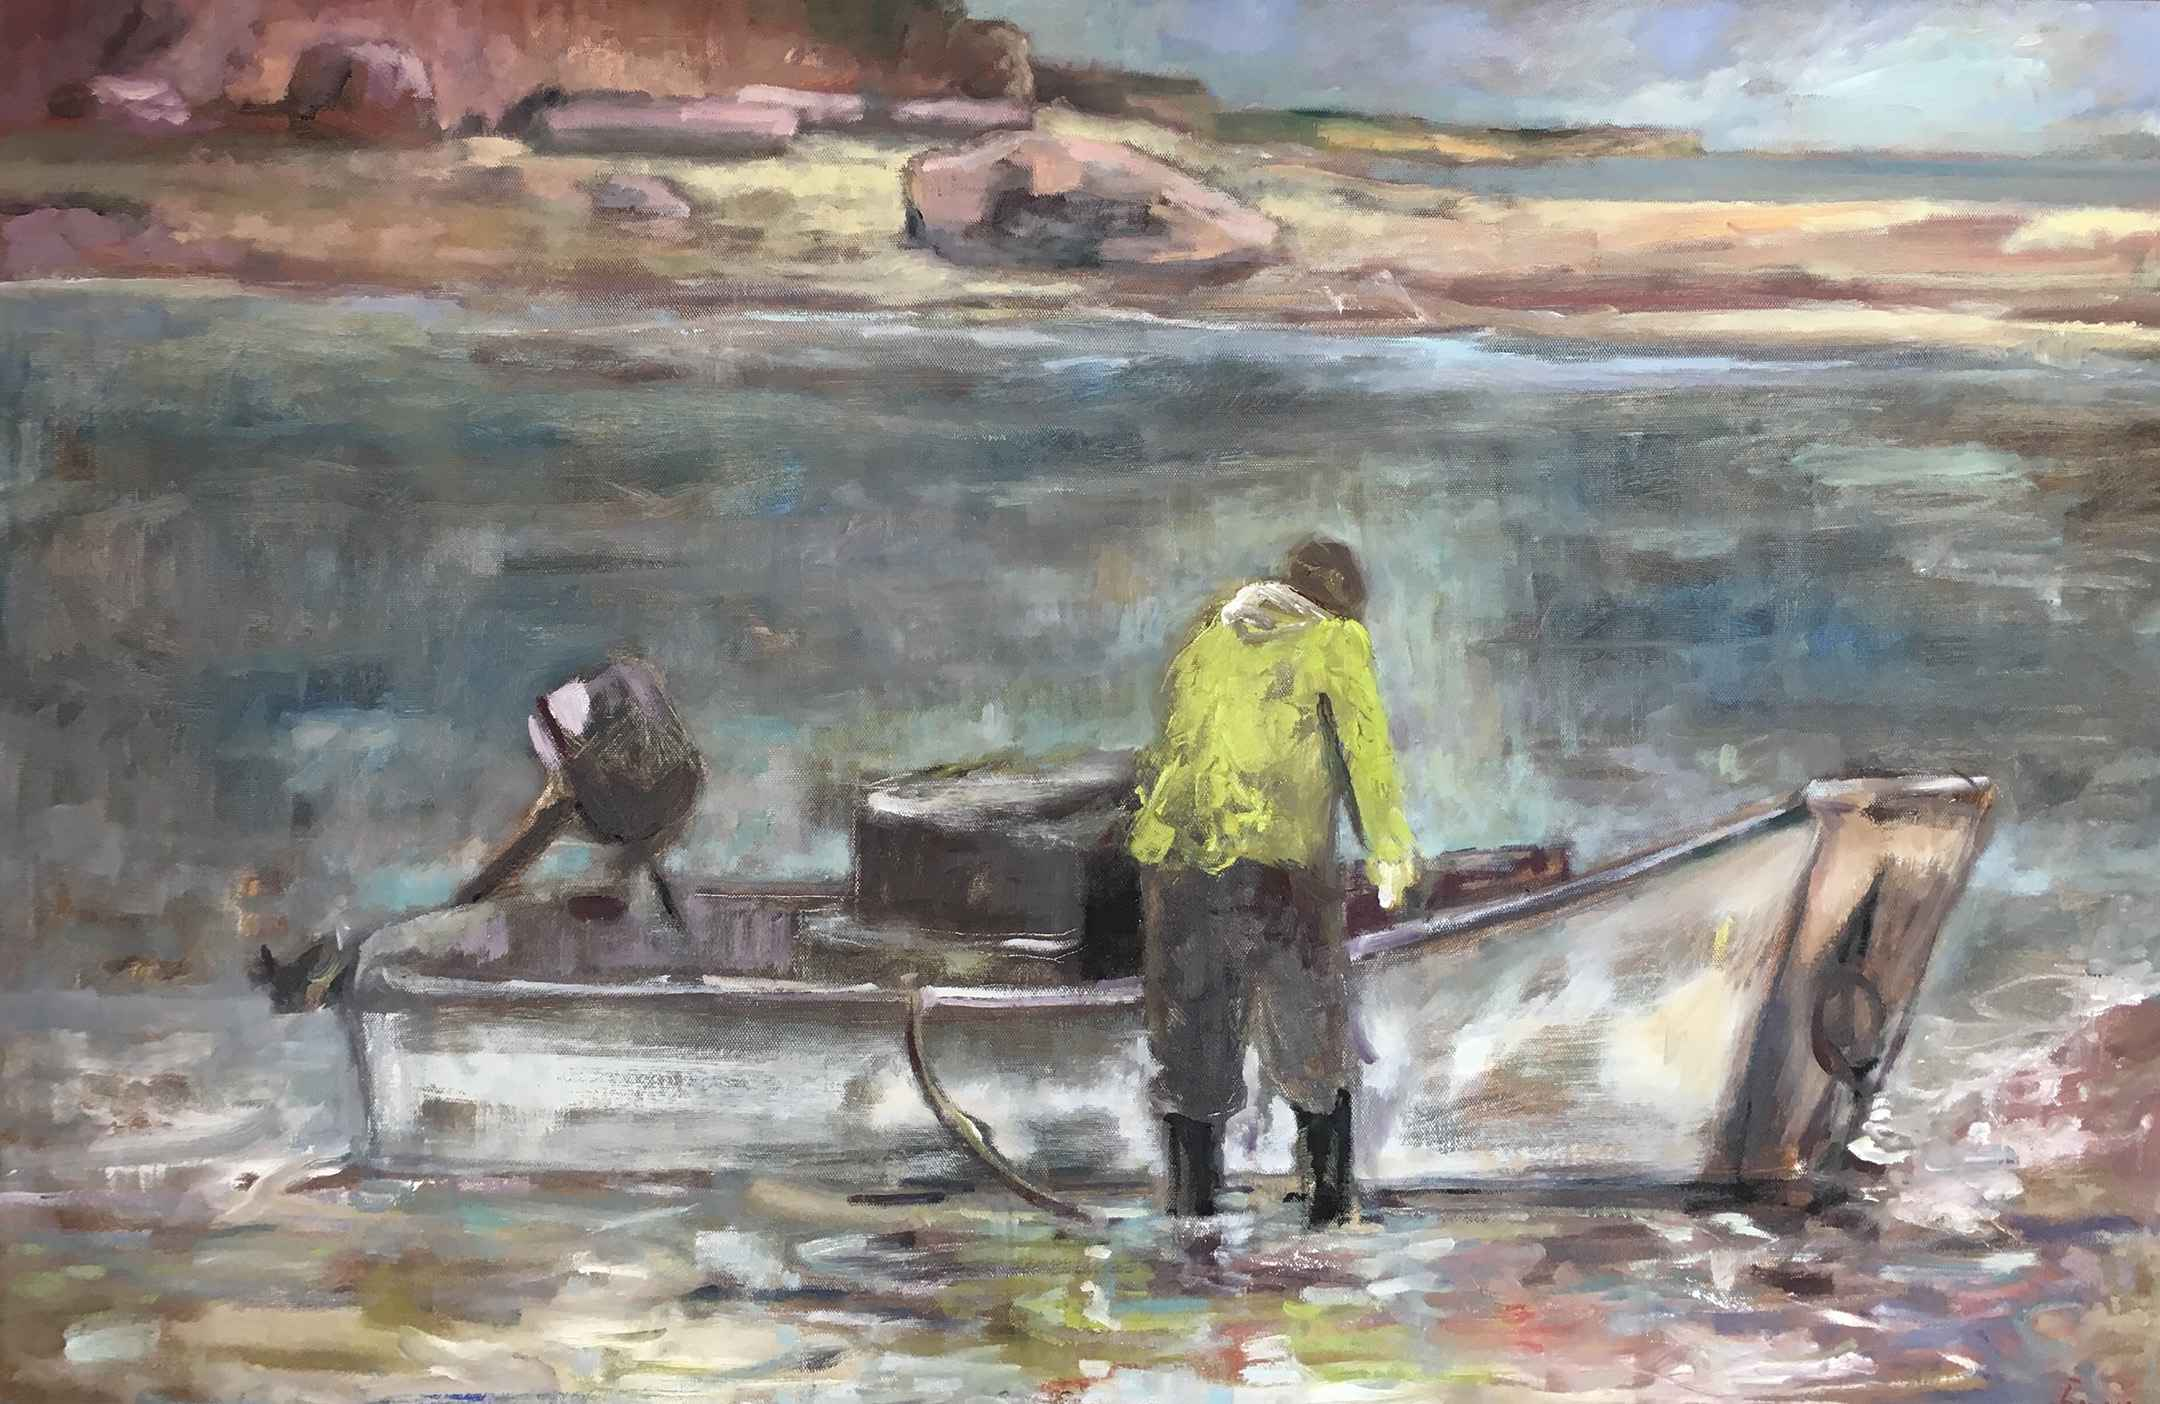 Up Island by  Traeger di Pietro - Masterpiece Online